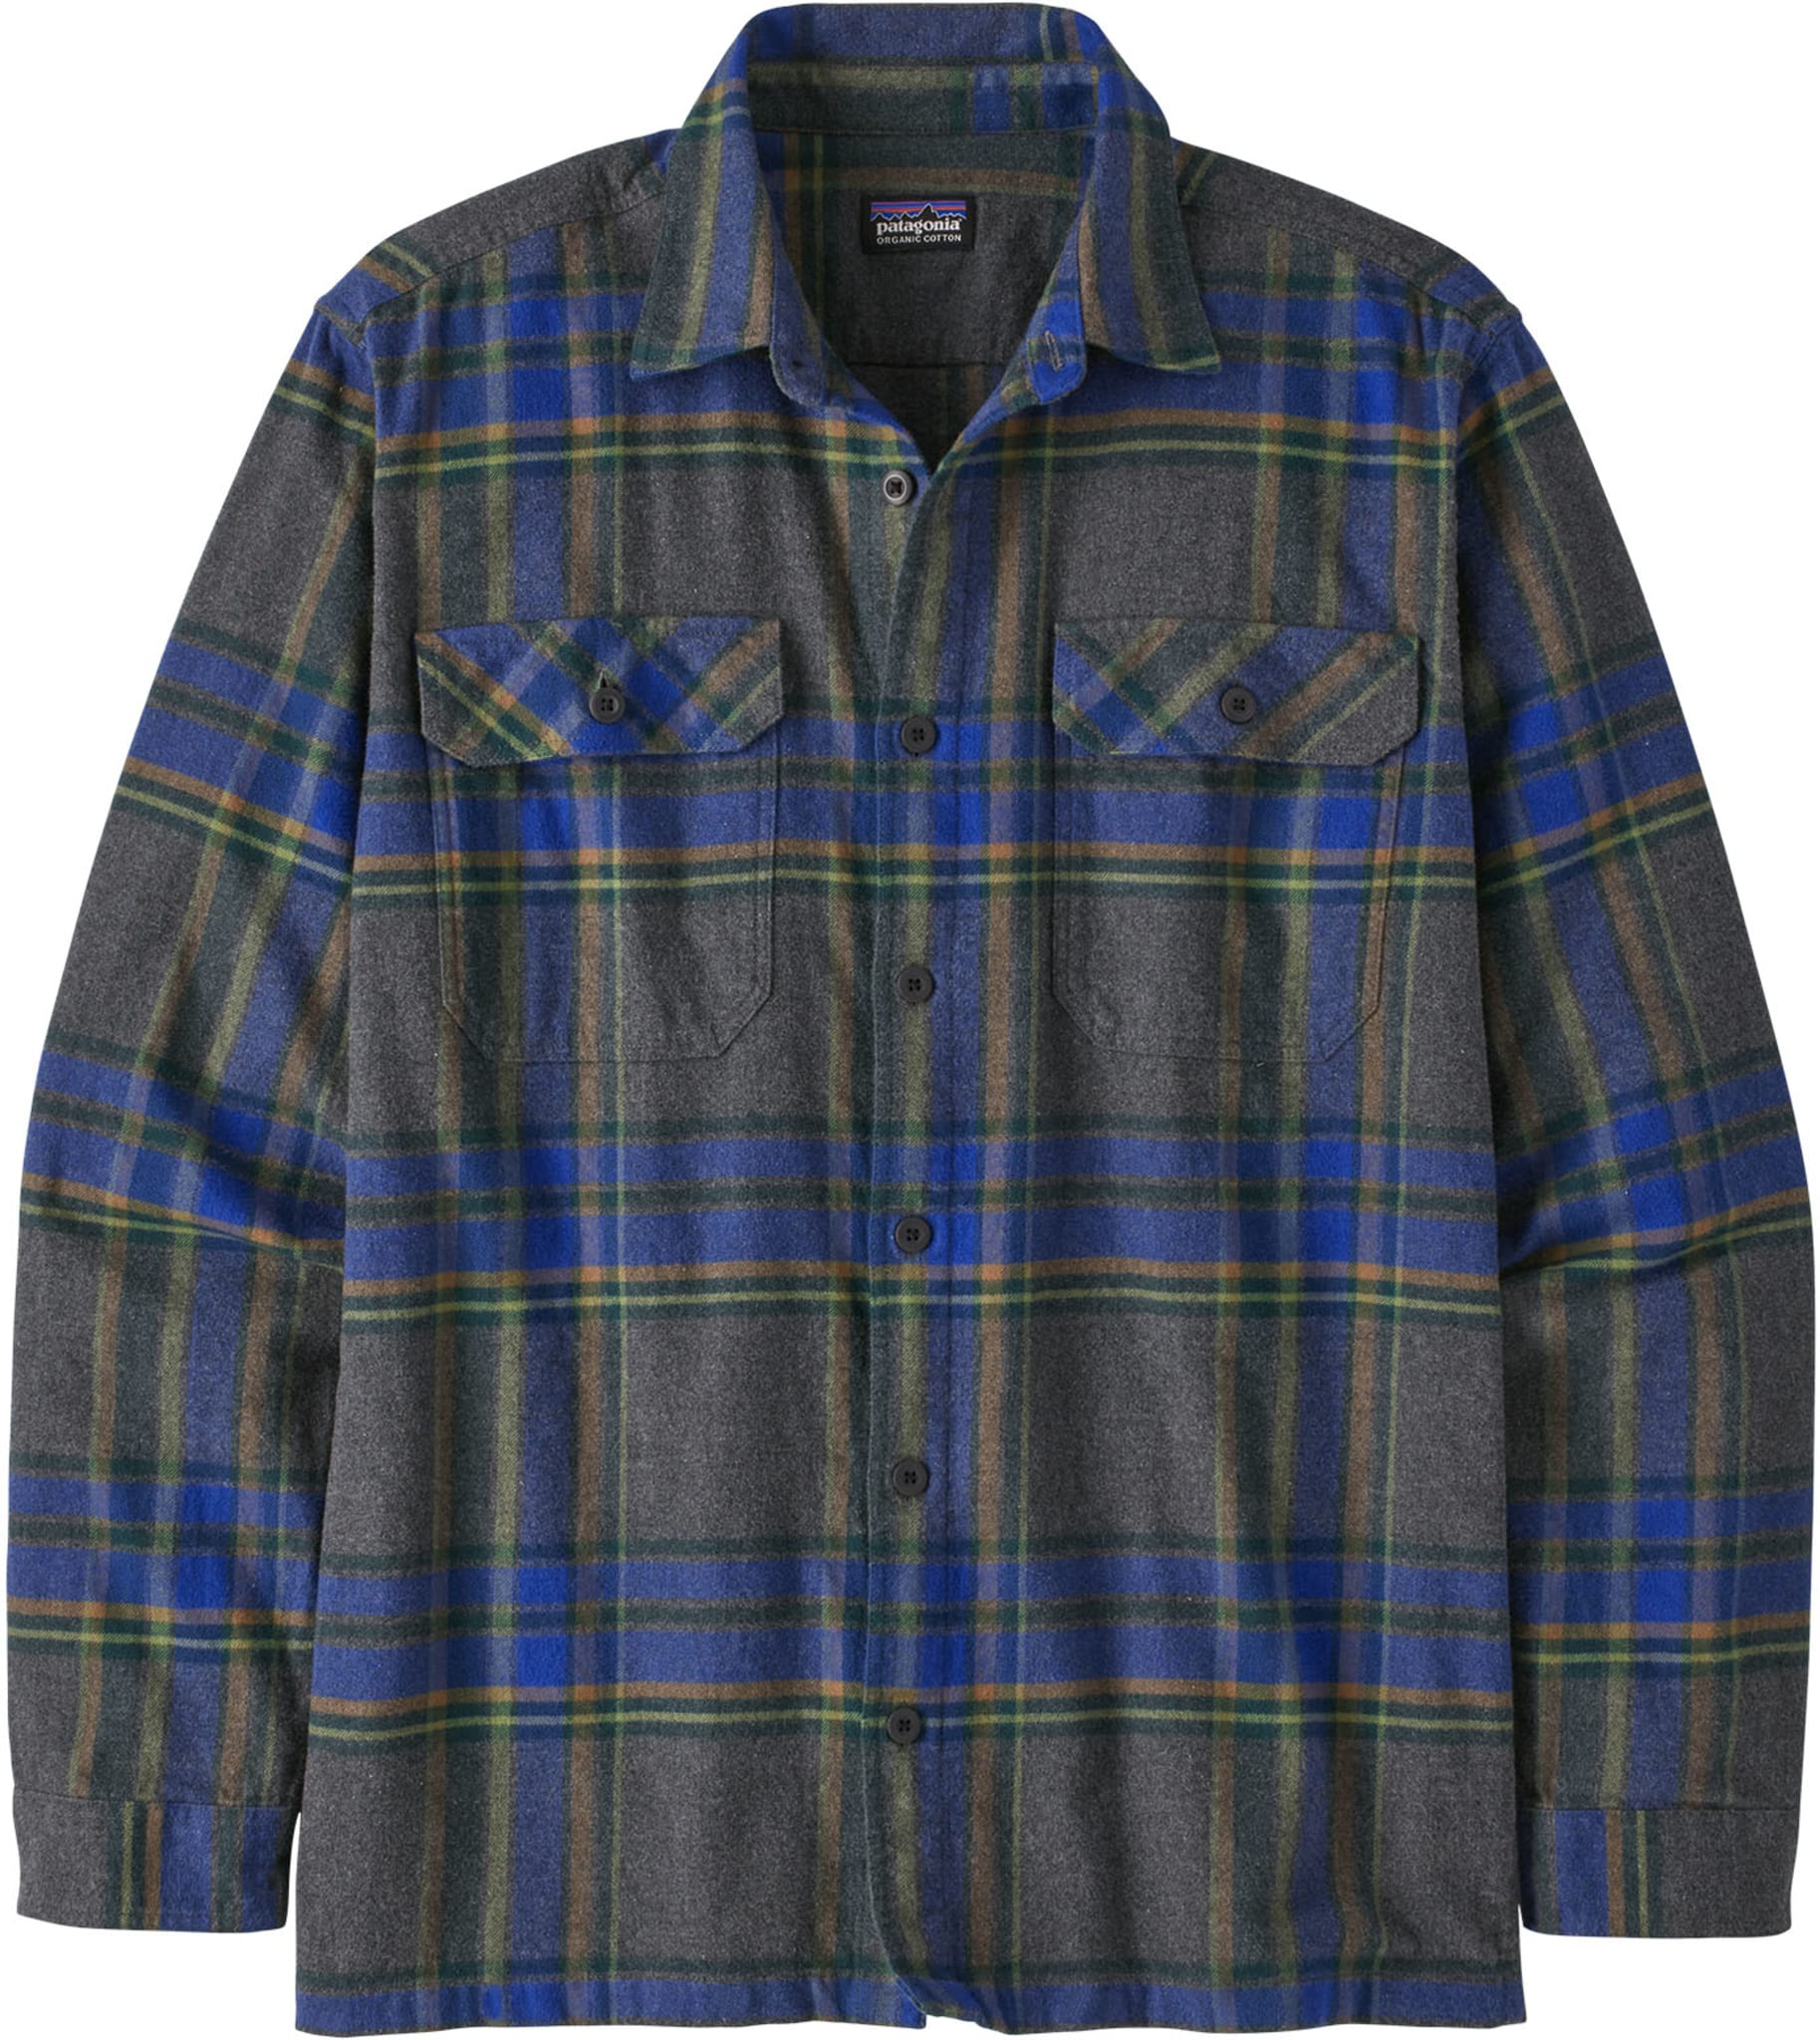 Organic Cotton Midweight Fjord Flannel Shirt M